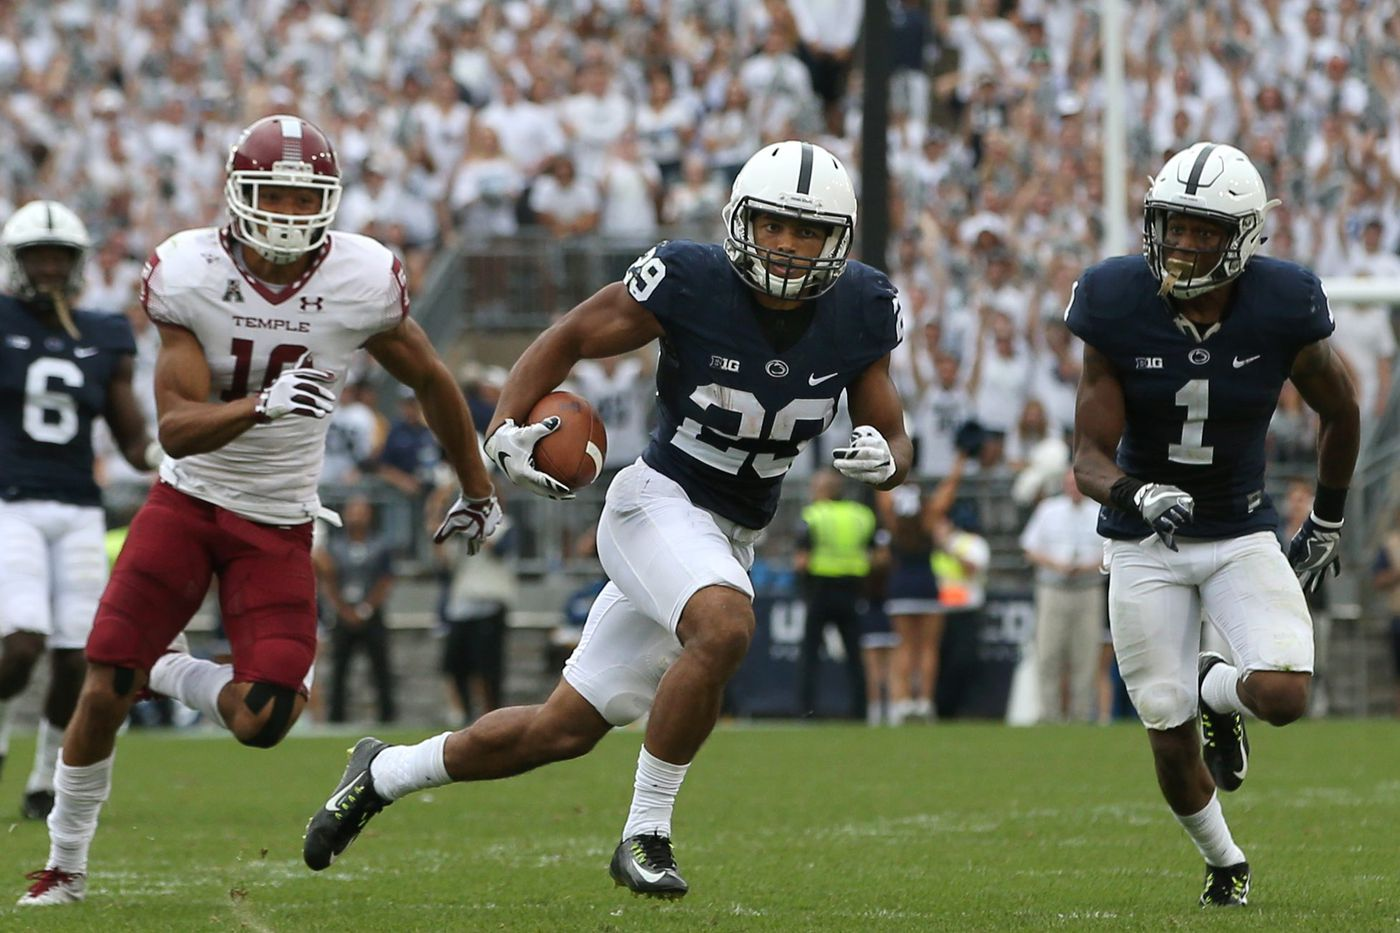 Penn State's John Reid, a St. Joseph's Prep grad, has no fear returning from knee injury